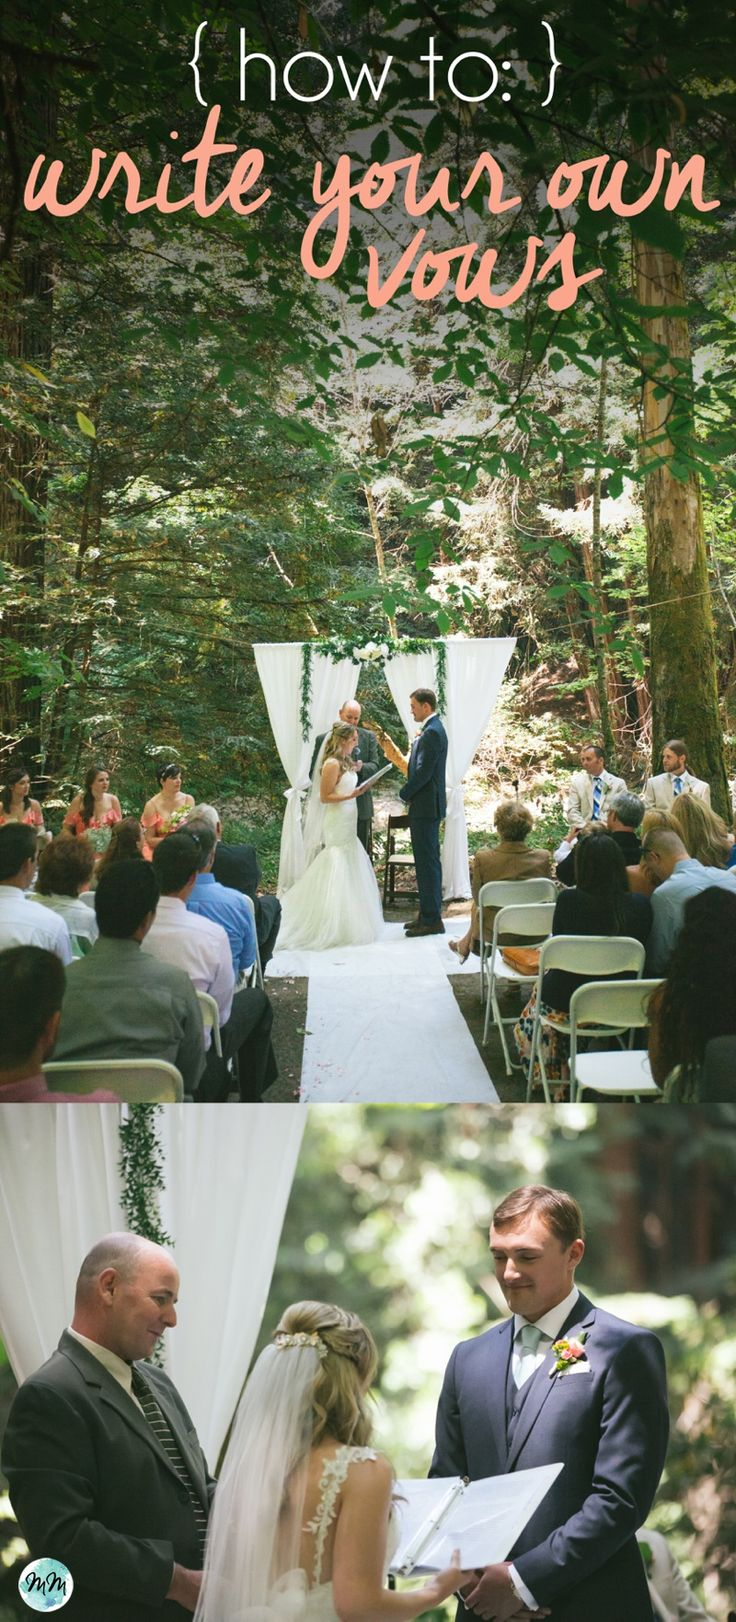 How to write your own vows http://msmelange.com/2014/04/15/wedding-wednesday-how-to-write-your-own-vows/